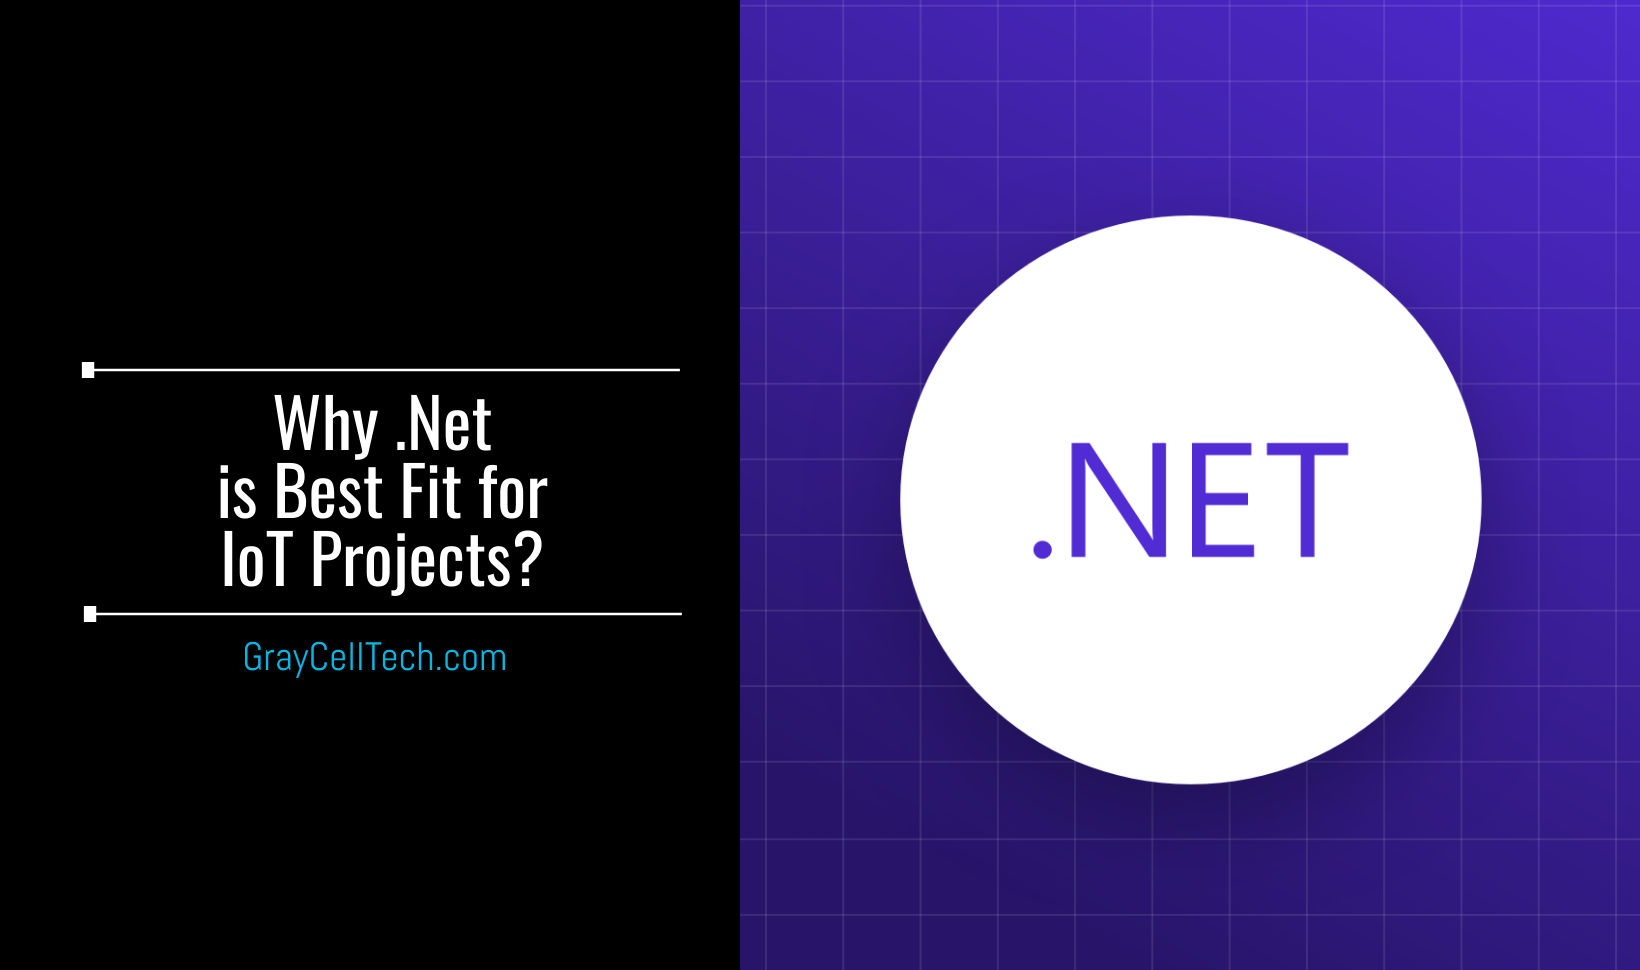 Why .Net is Best Fit for IoT Projects? Let's go through some solid reasons to choose .net over other platforms